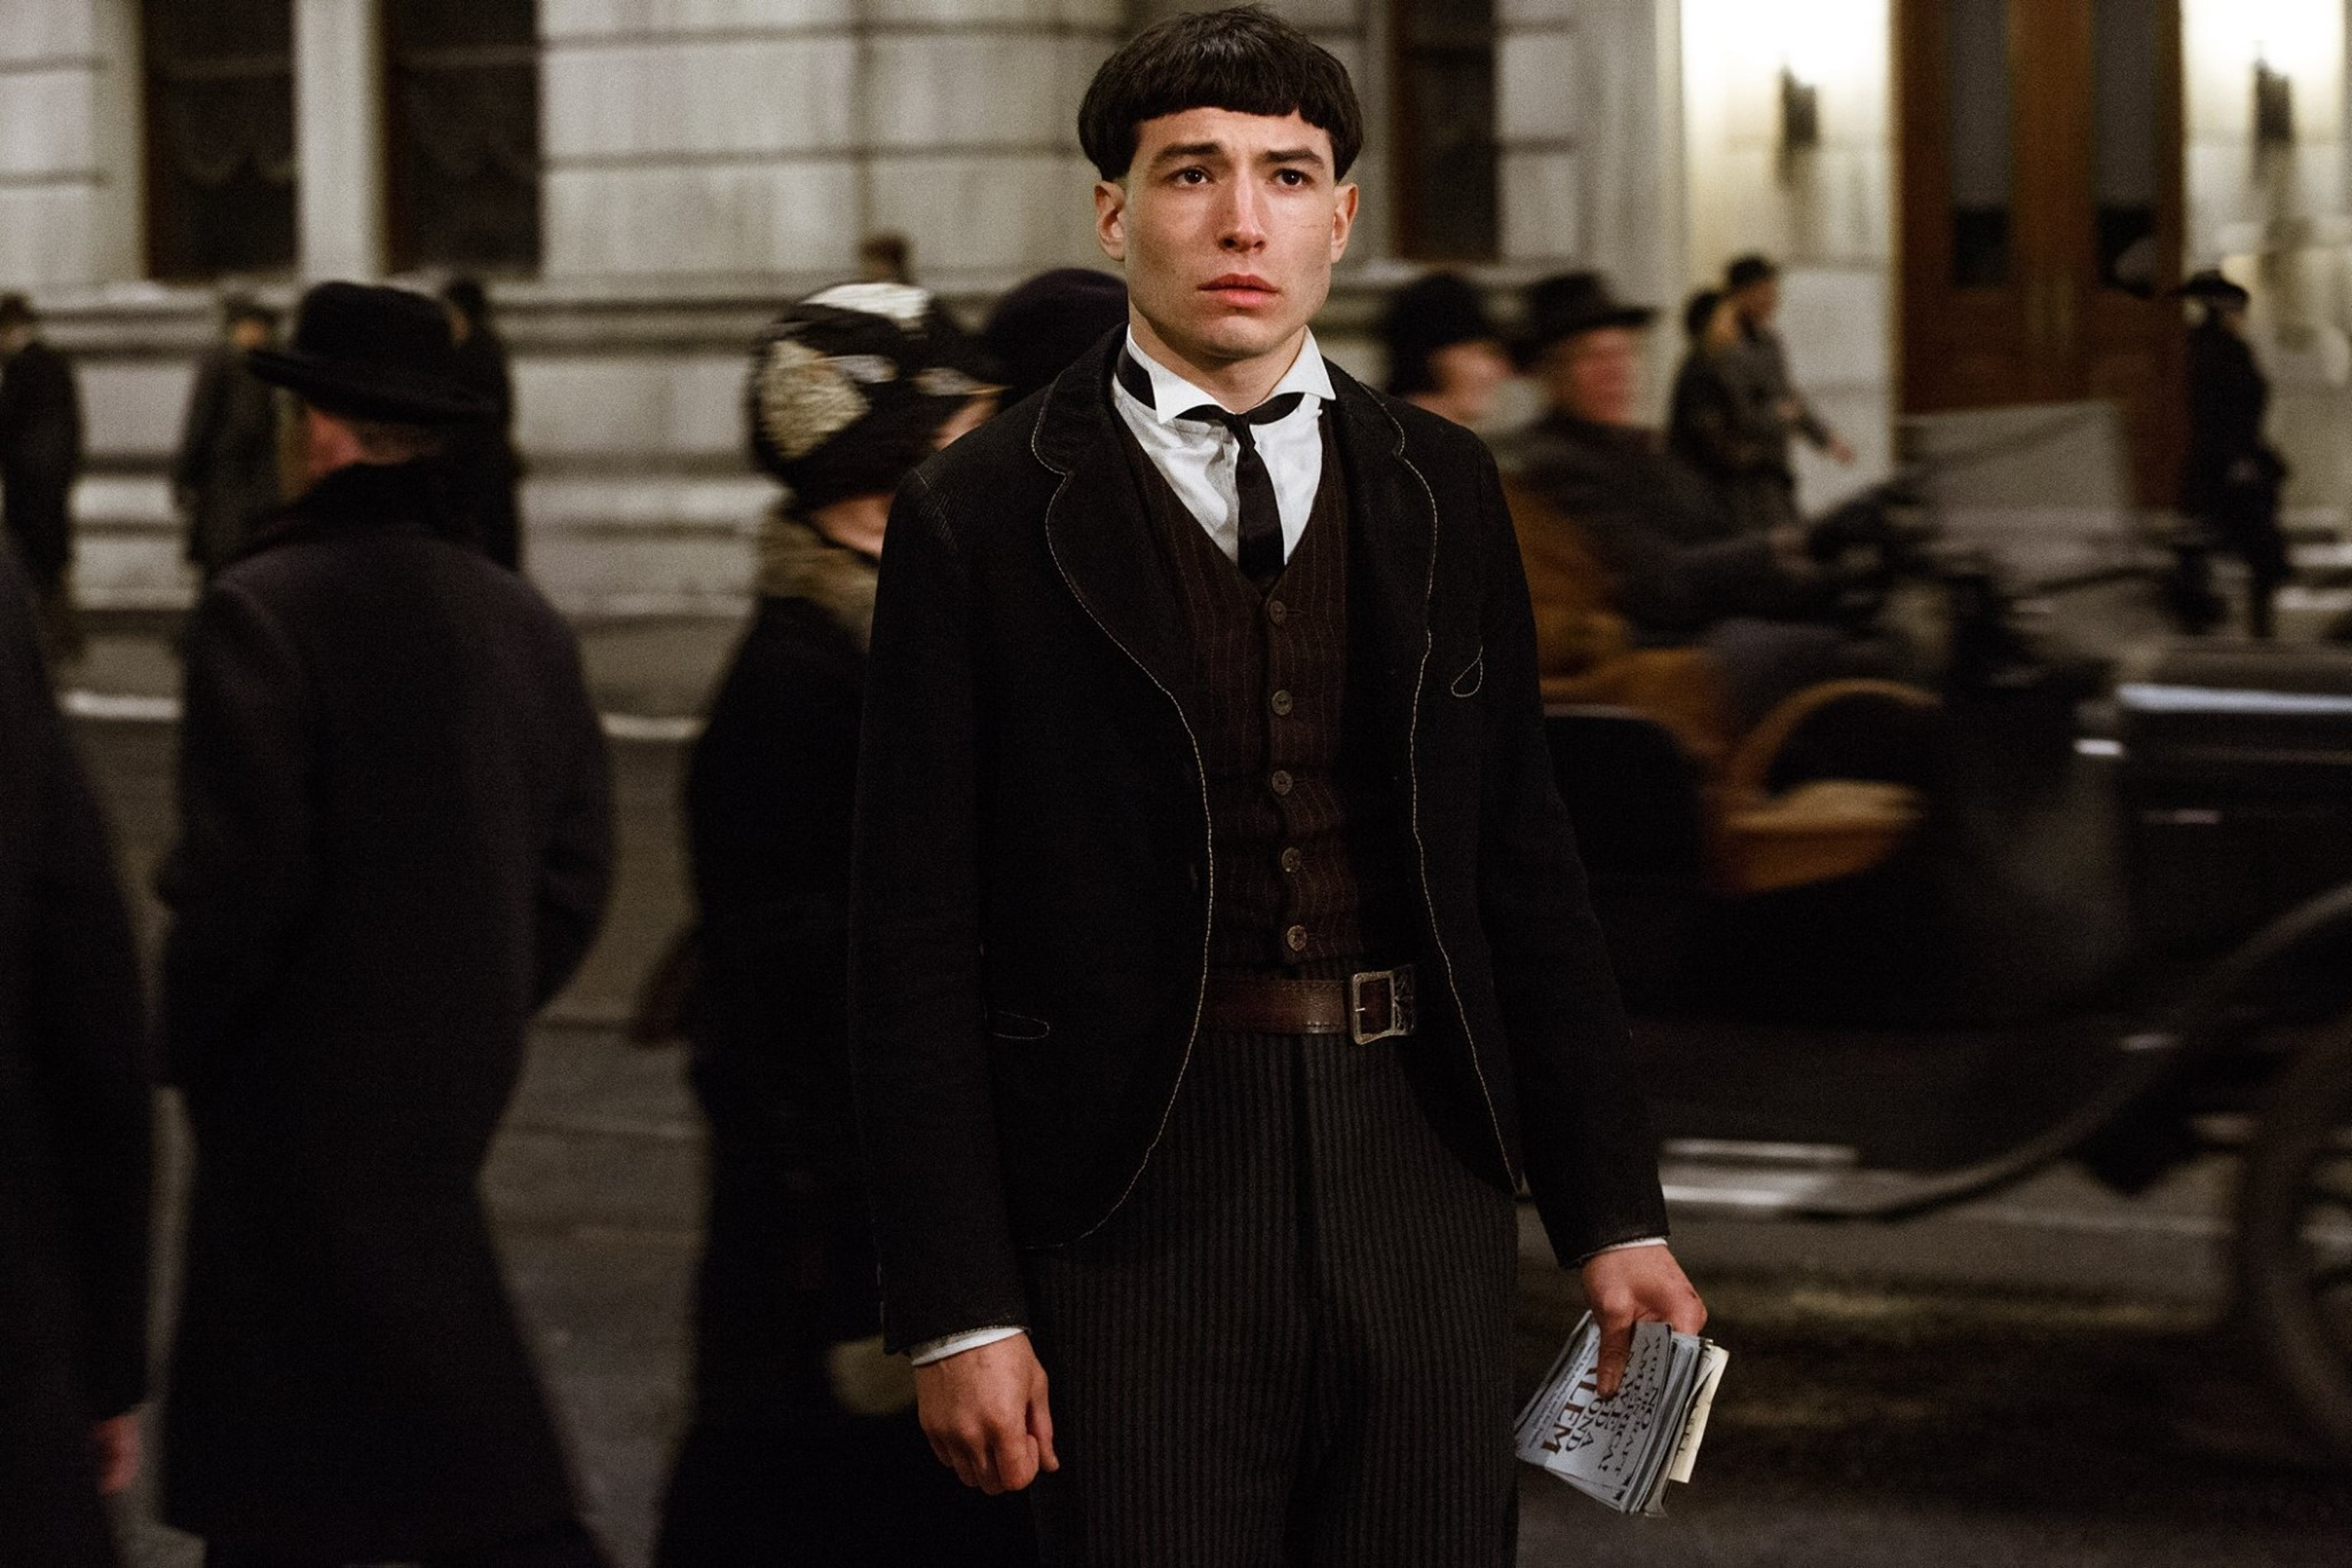 Credence Barebone and the Haircut of Secrets